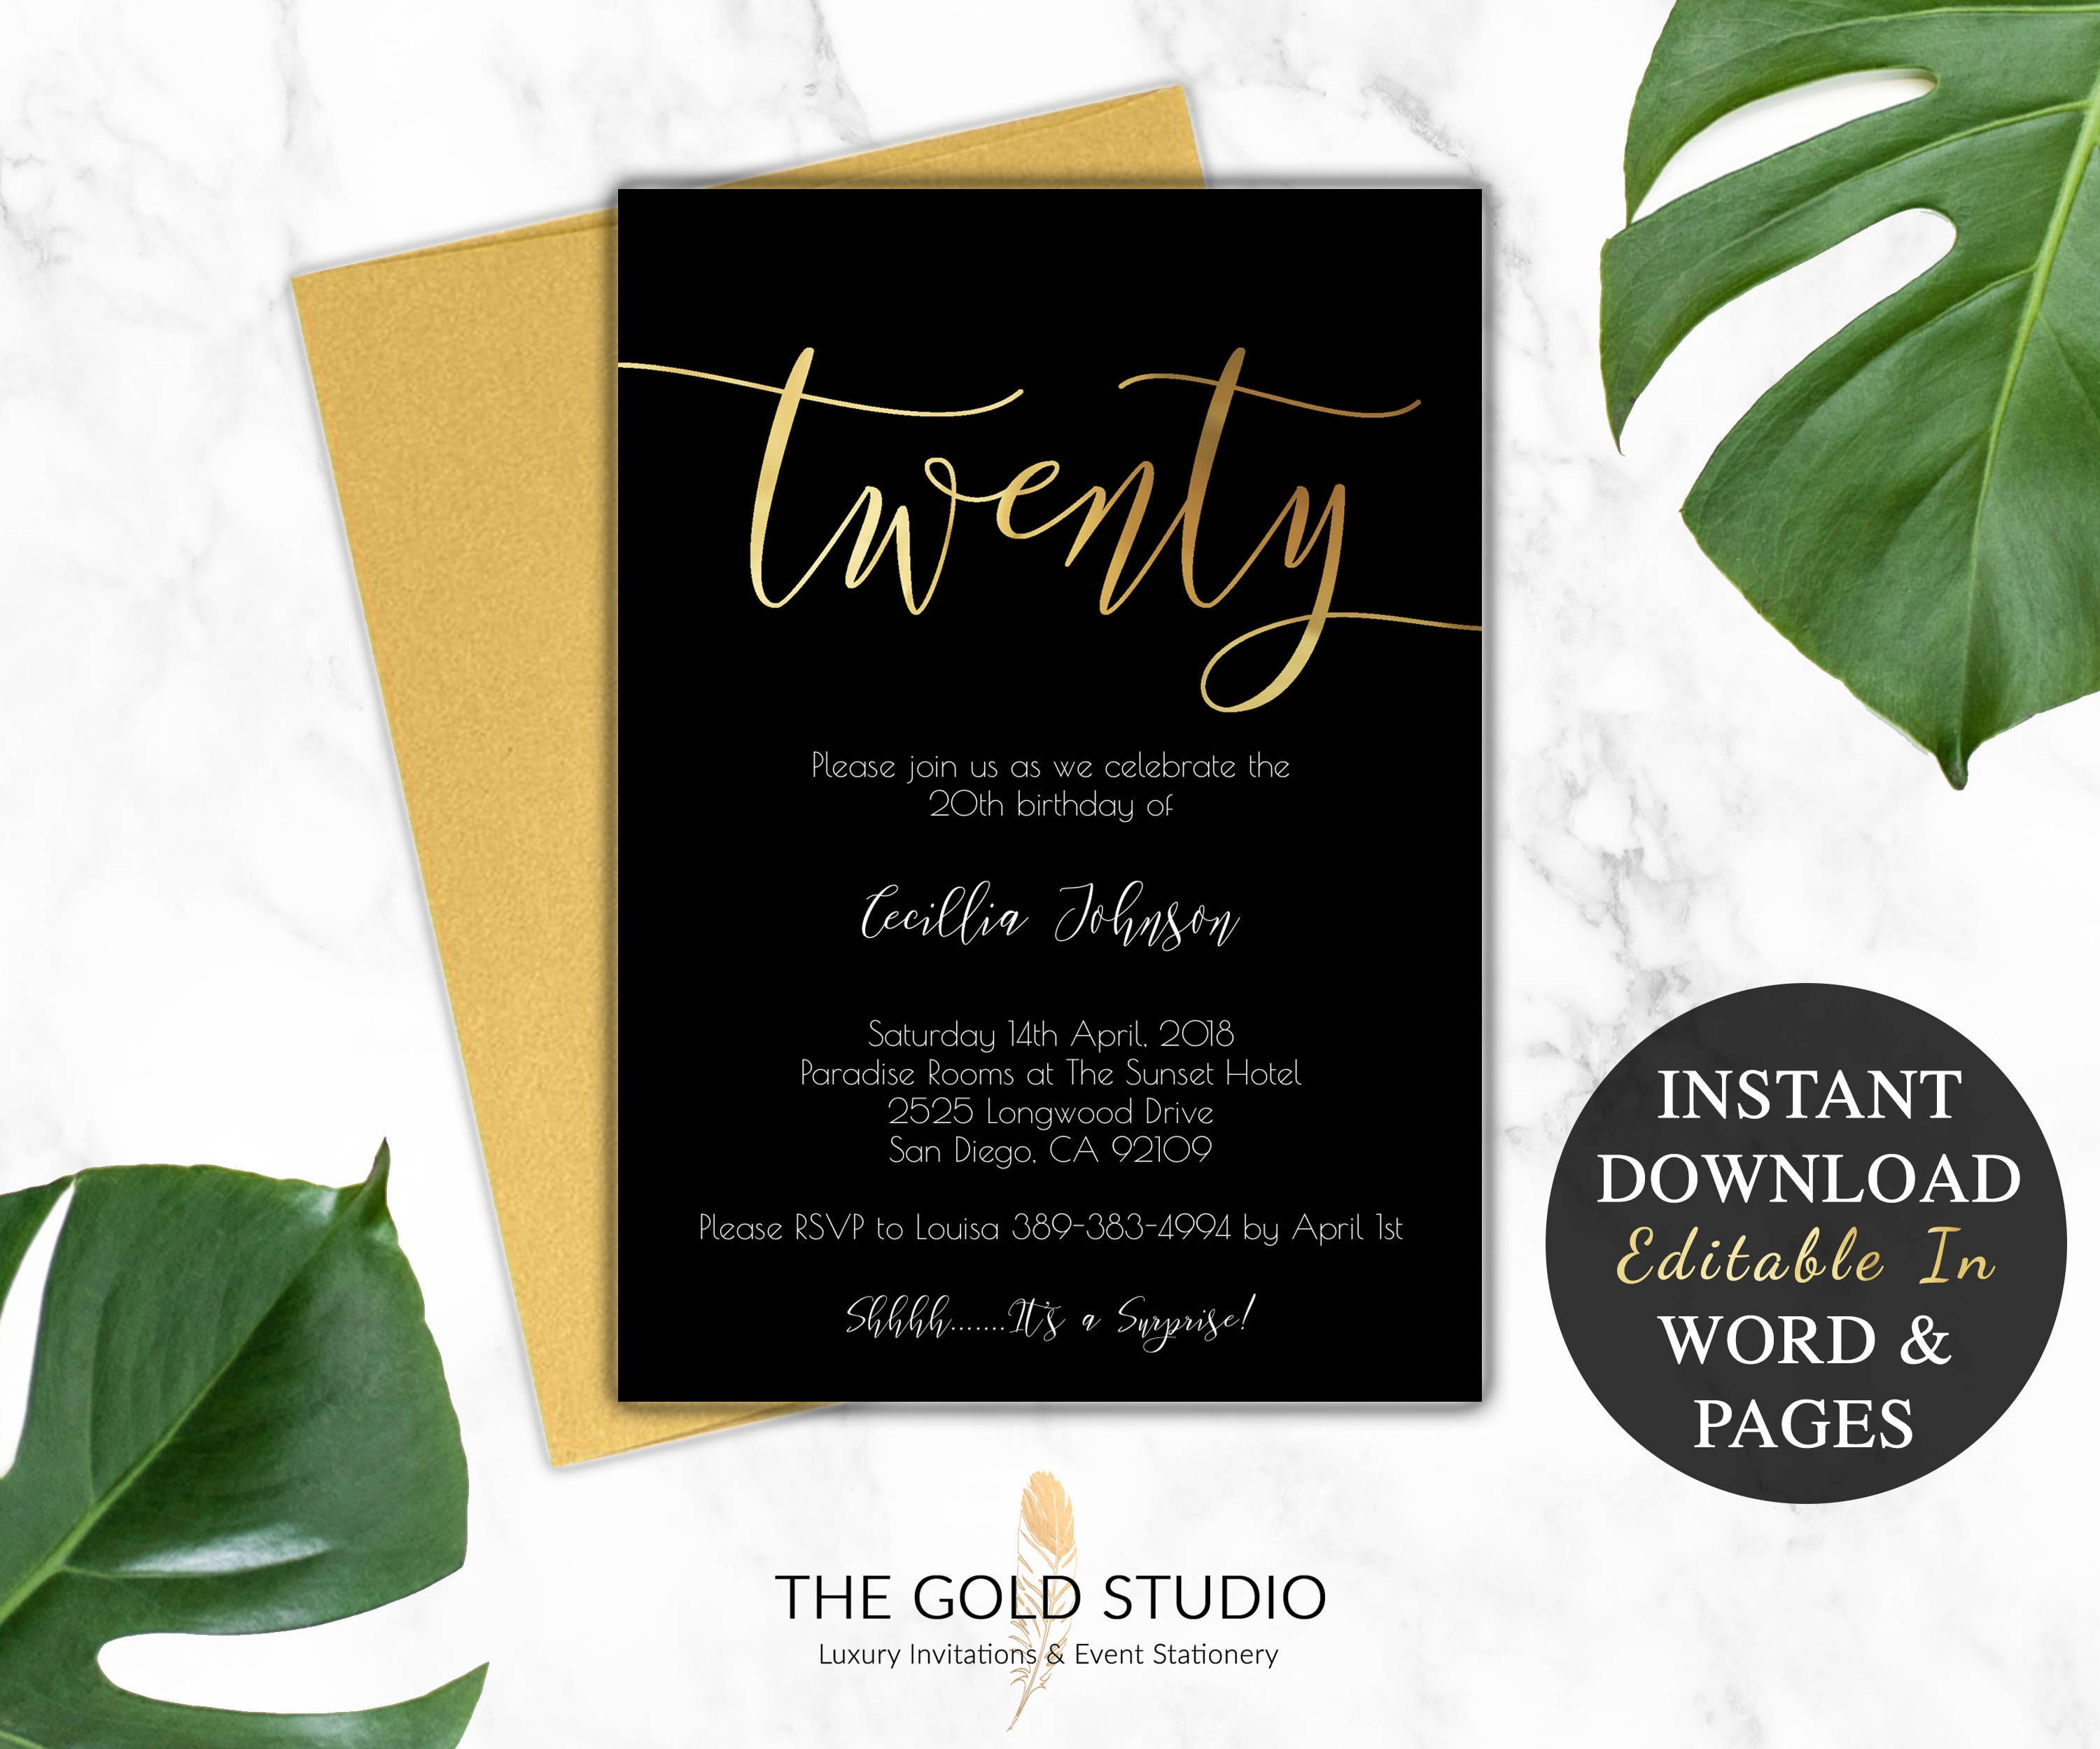 20th birthday invitation instant download birthday invite 20th birthday invitation instant download birthday invite printable gold black birthday invitation editable diy template invitation filmwisefo Images